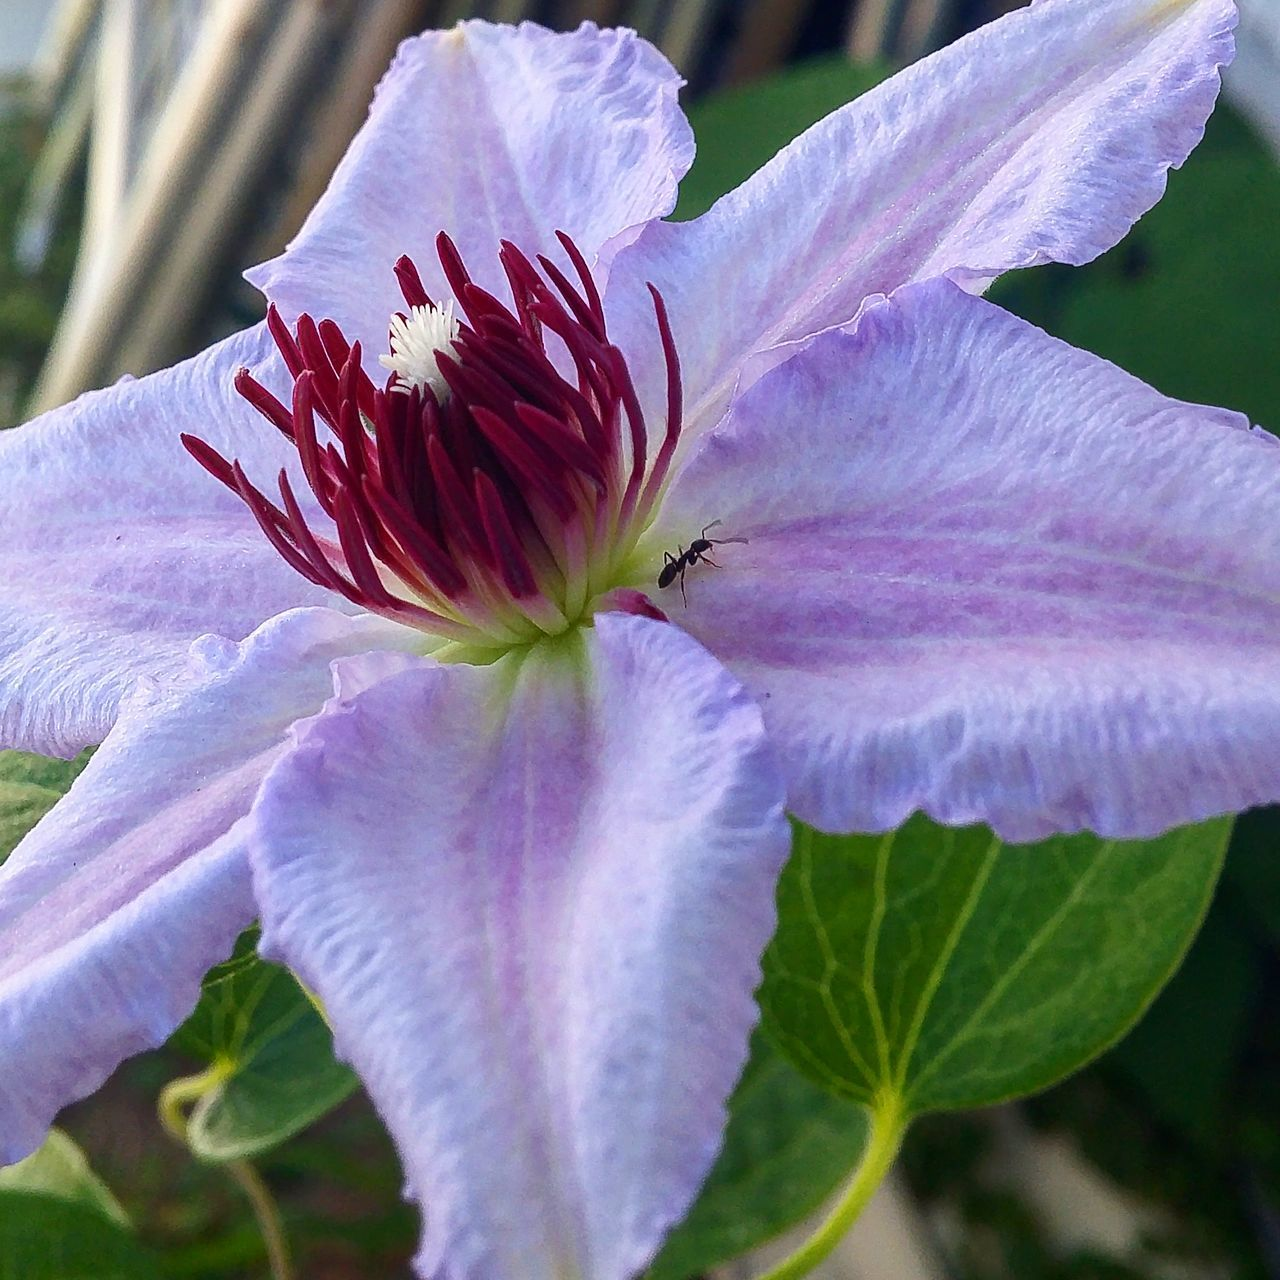 Clematis Flower Vine Purple Flower Beauty In Nature Nature Garden Flowers Focus On Foreground Outdoors Garden Greenthumb No People Hymenoptera Formicidae Insect Ant Close-up Perrenials Lg Flex Lifes Good EyeEm Gallery EyeEm Flower